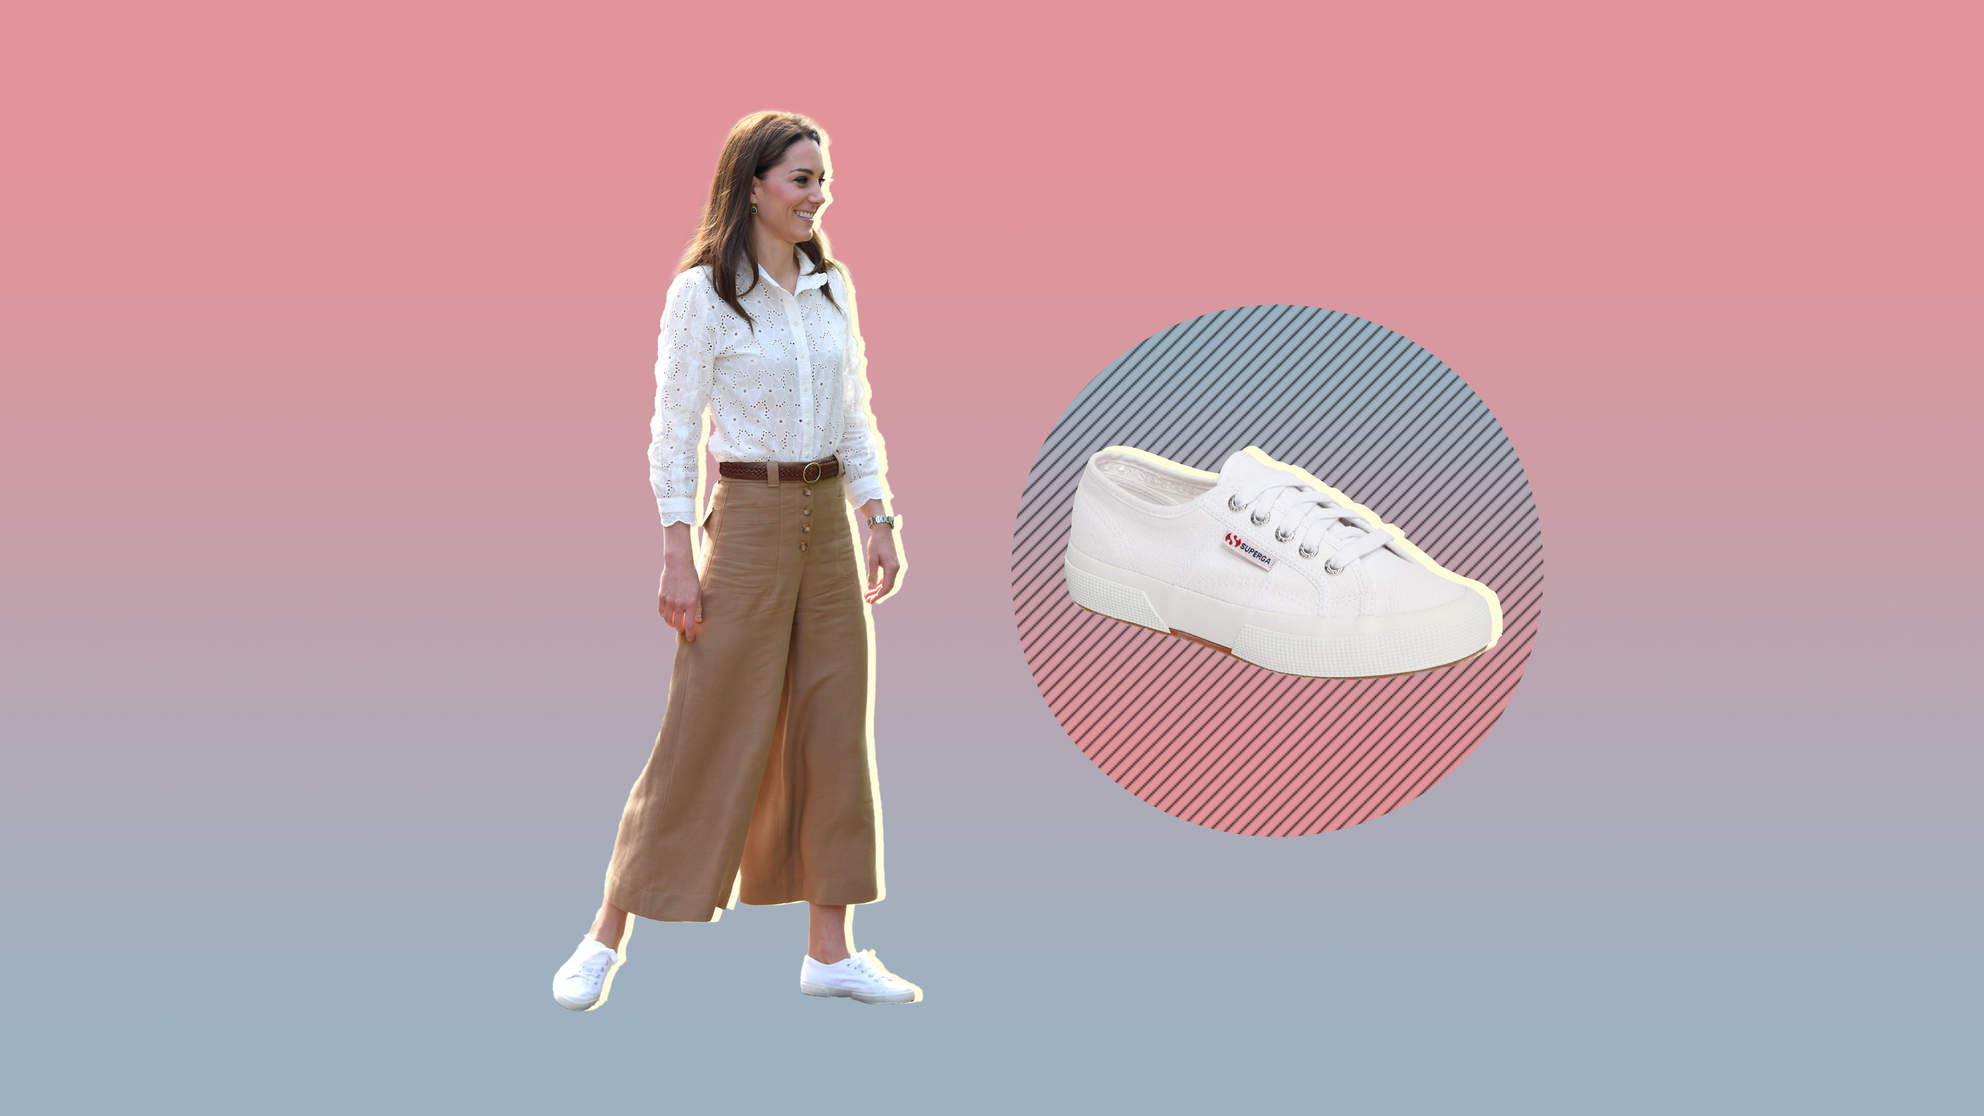 Kate Middleton Just Wore the Cutest White Sneakers for Summer